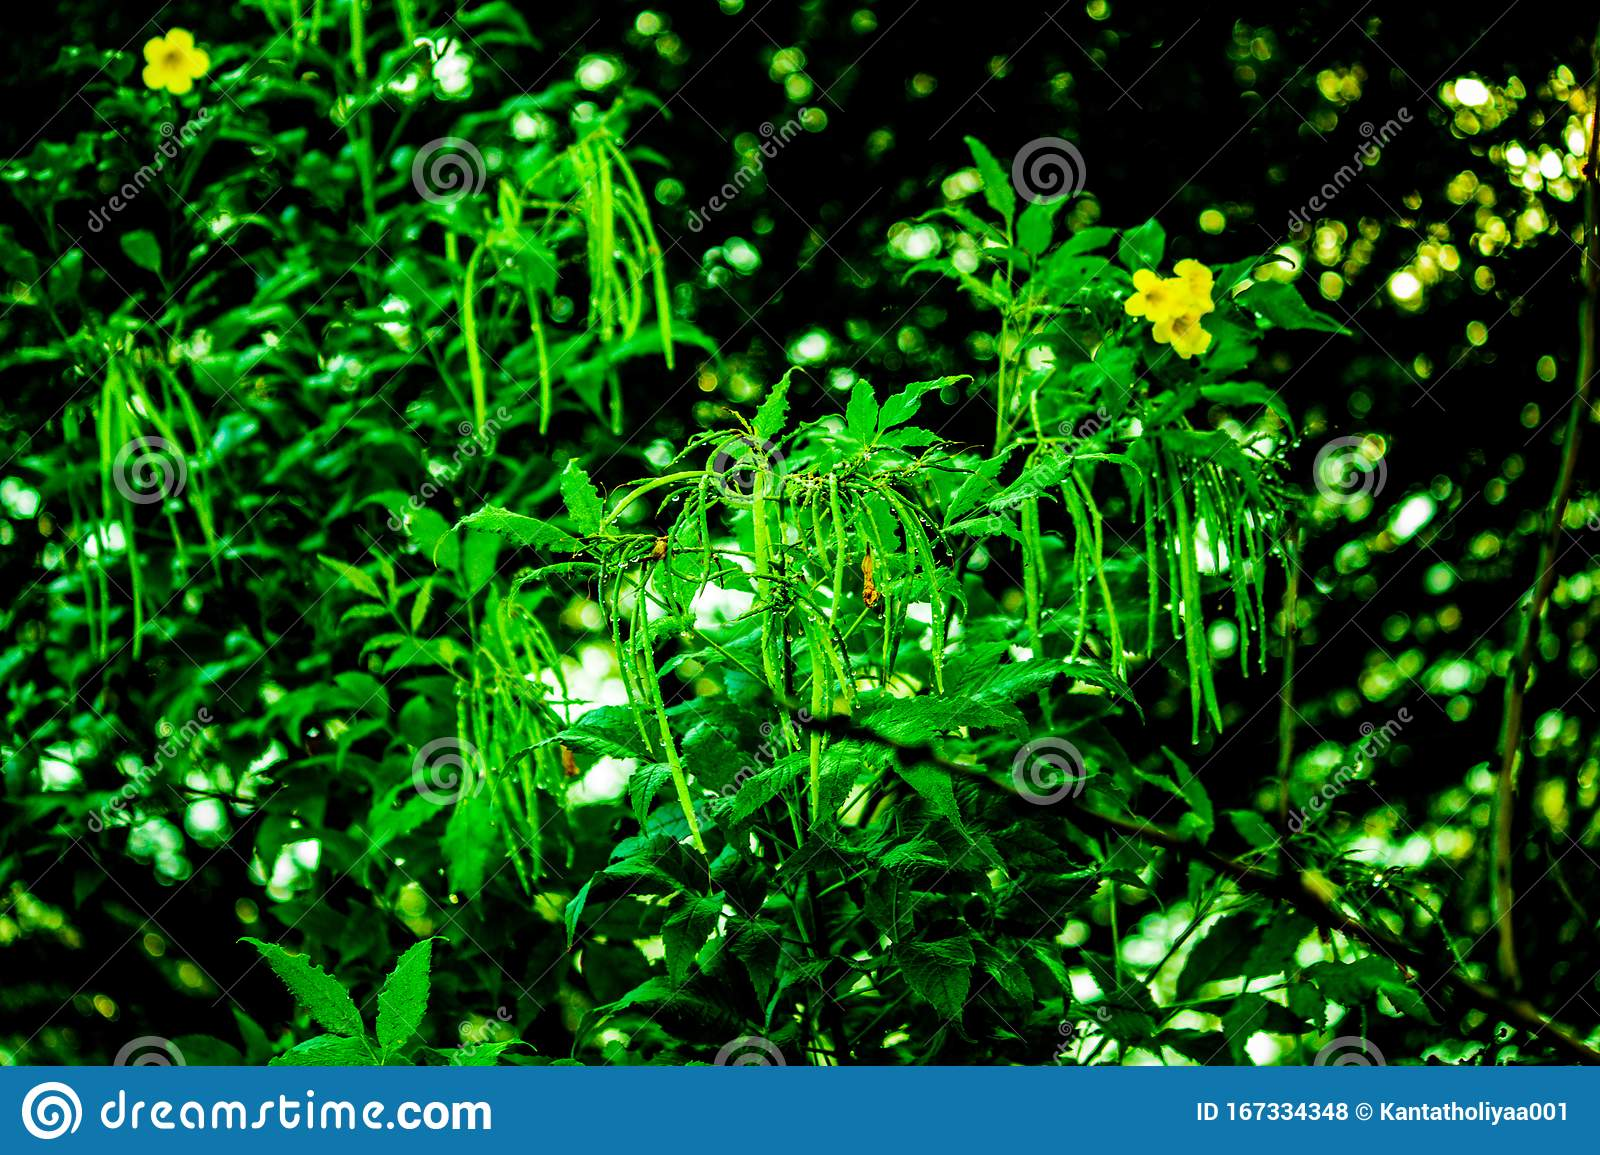 Beautiful Dark Green Plant With Yellow Flower Stock Photo Image Of Dark Background 167334348